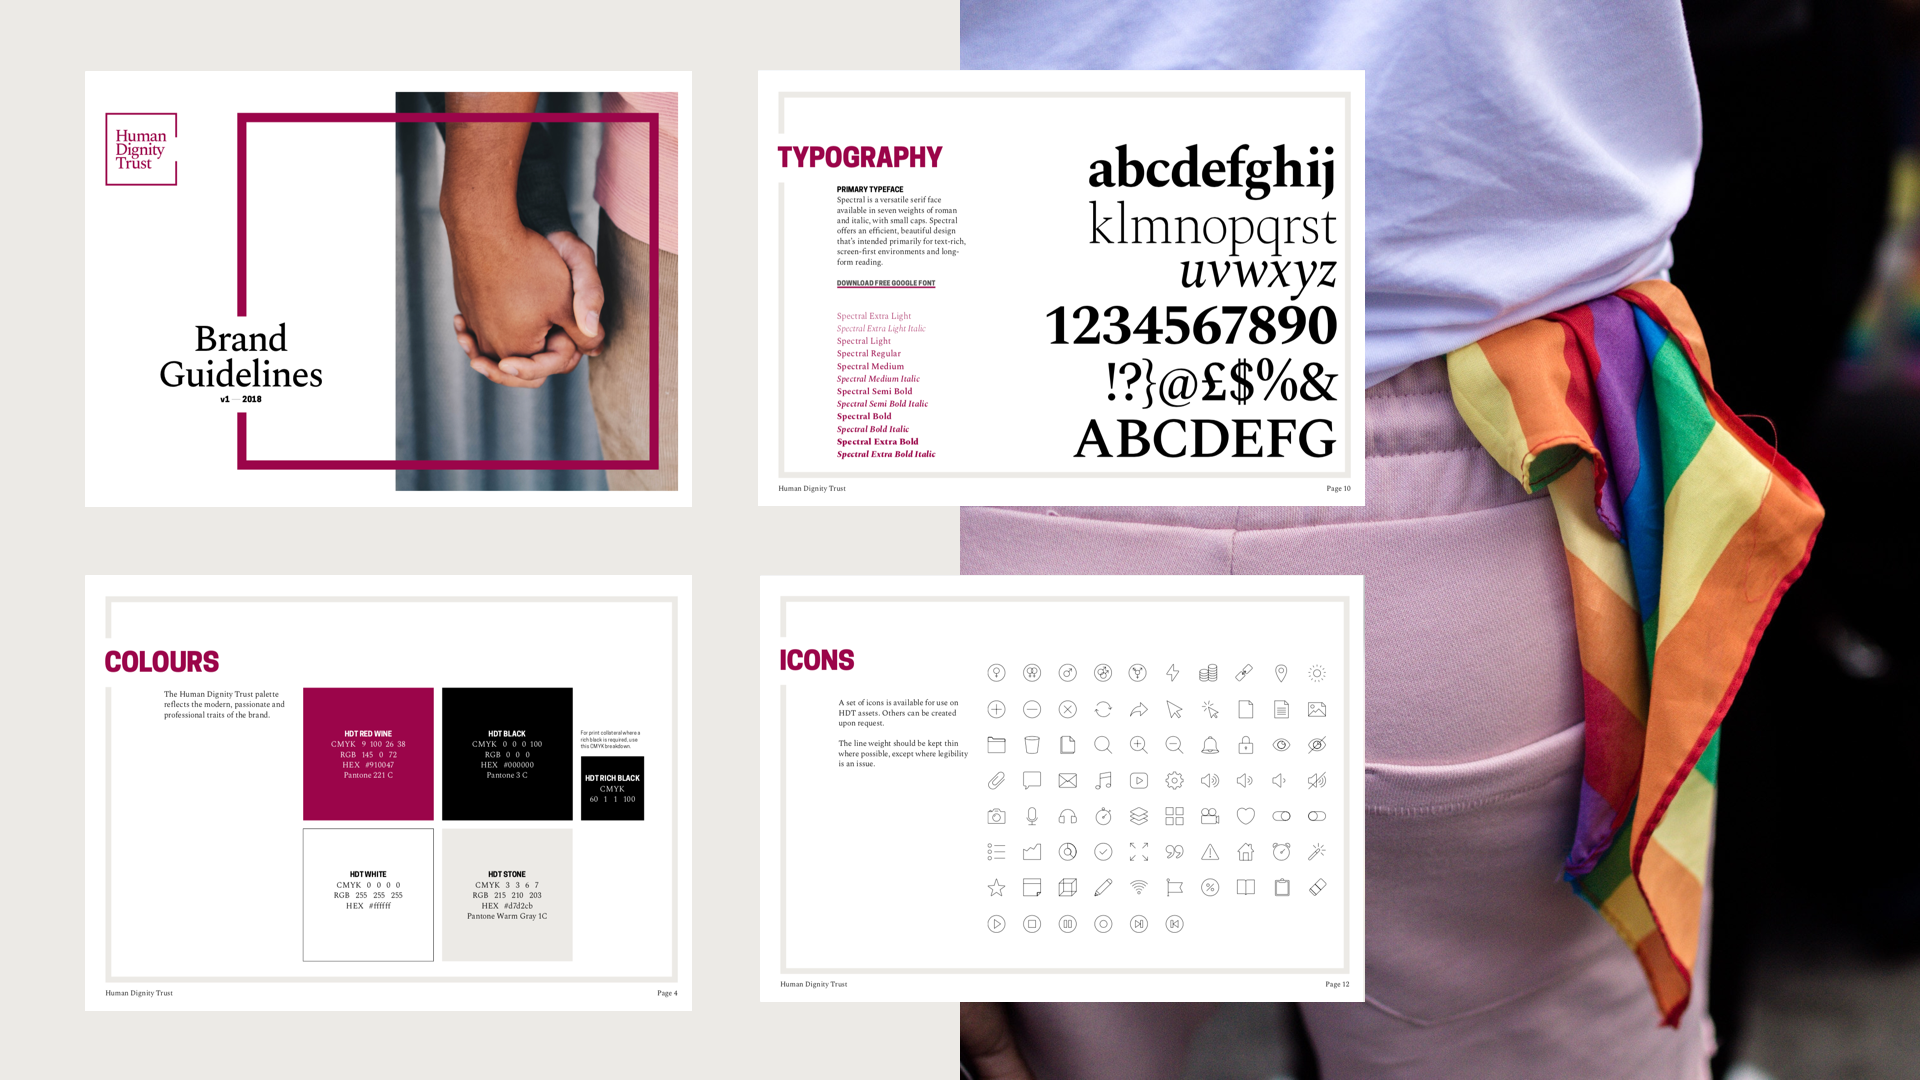 Some pages from the Human Dignity Trust brand guidelines